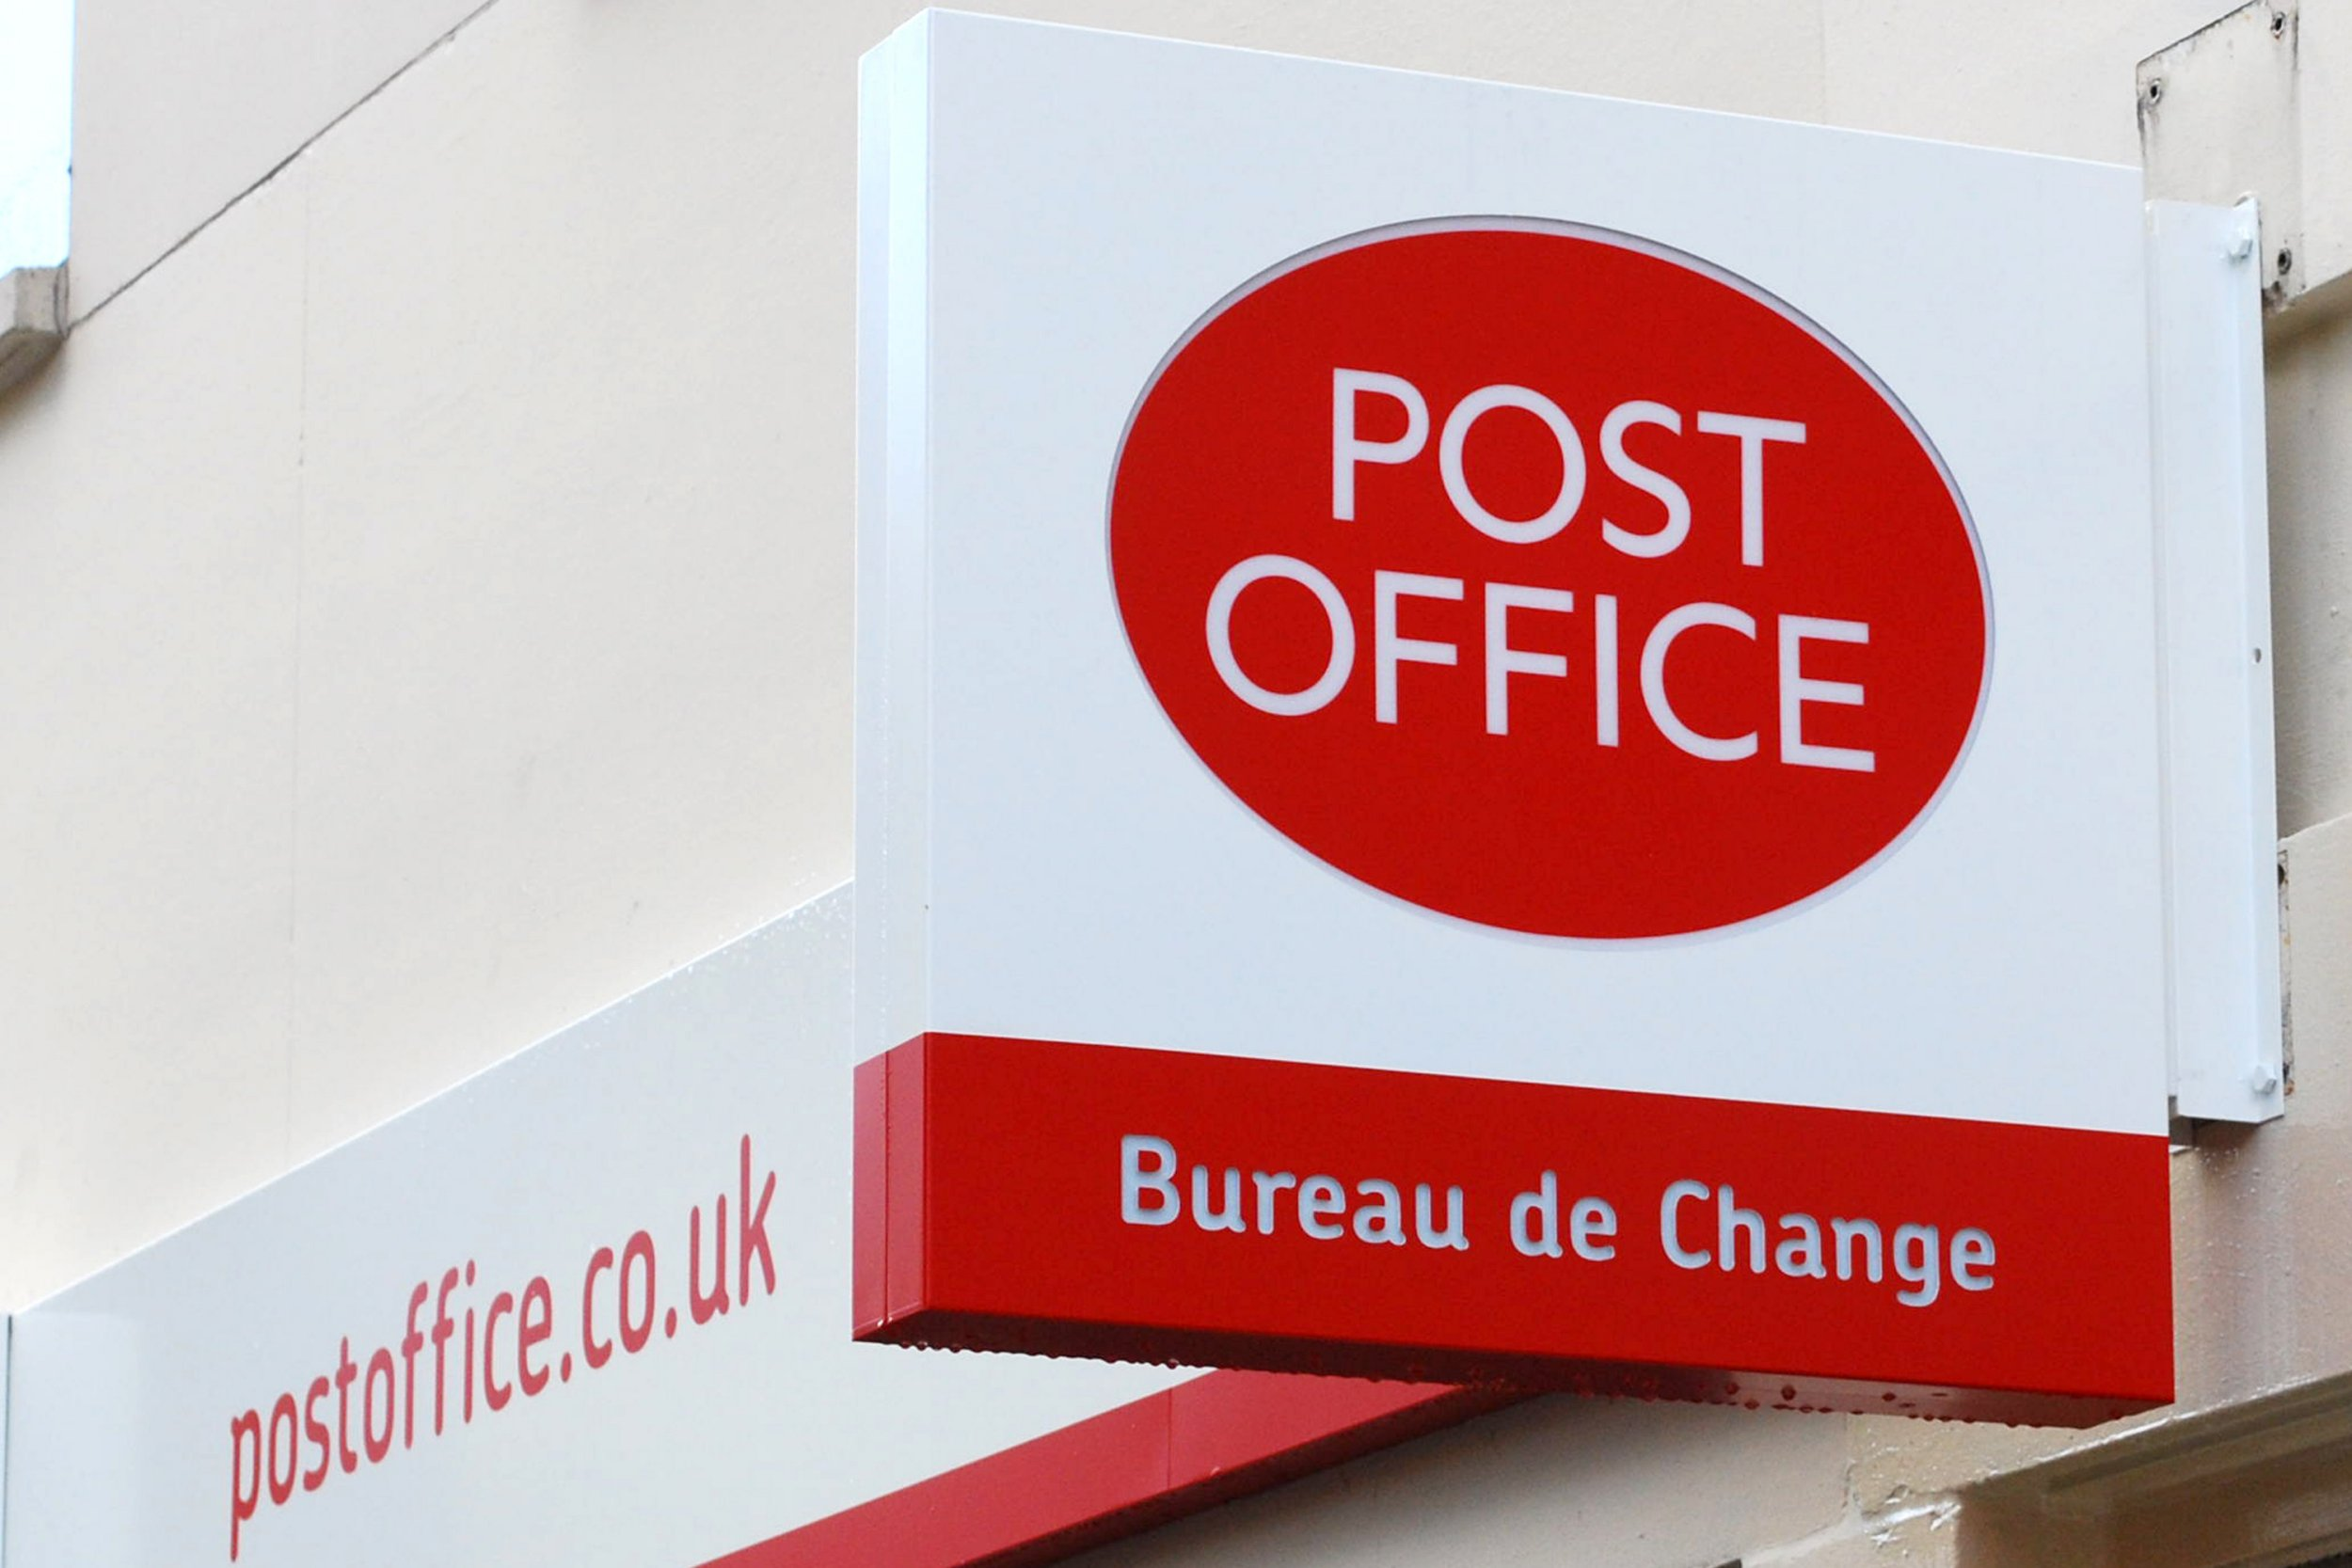 File photo dated 03/11/09 of a Post Office sign, as a strike by Post Office workers is to go ahead next week after their union said an offer it made to resolve a row over jobs, pensions and closures was rejected. PRESS ASSOCIATION Photo. Issue date: Thursday December 15, 2016. Members of the Communication Workers Union (CWU) will walk out next week, including on Christmas Eve, after the Post Office was accused of rejecting a peace plan. See PA story INDUSTRY Post. Photo credit should read: Lewis Stickley/PA Wire